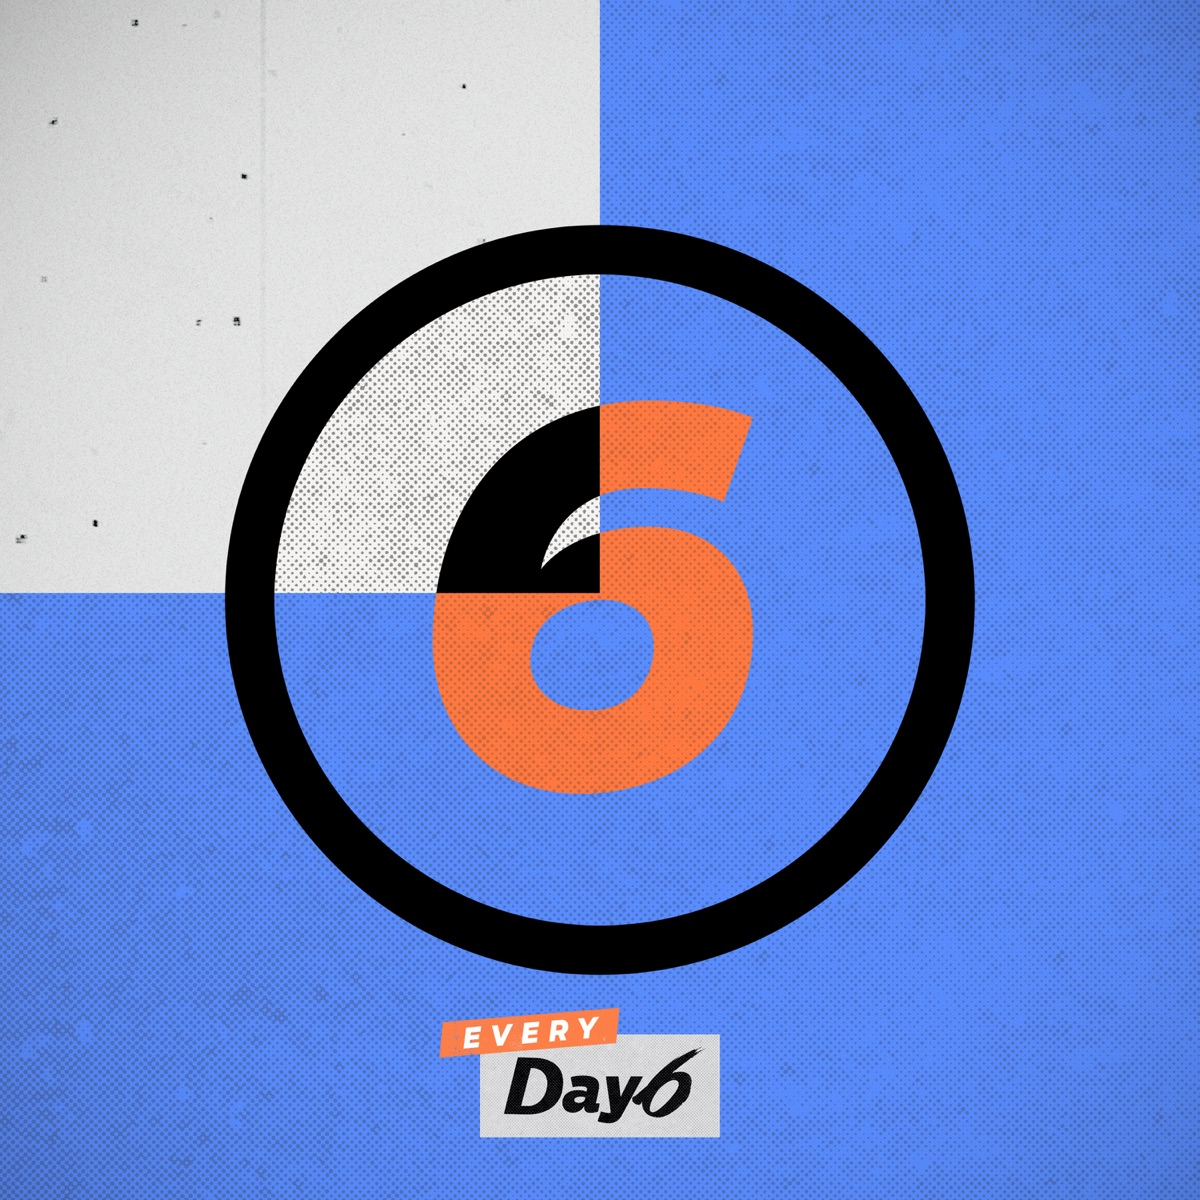 Every DAY6 September - Single Album Cover by DAY6